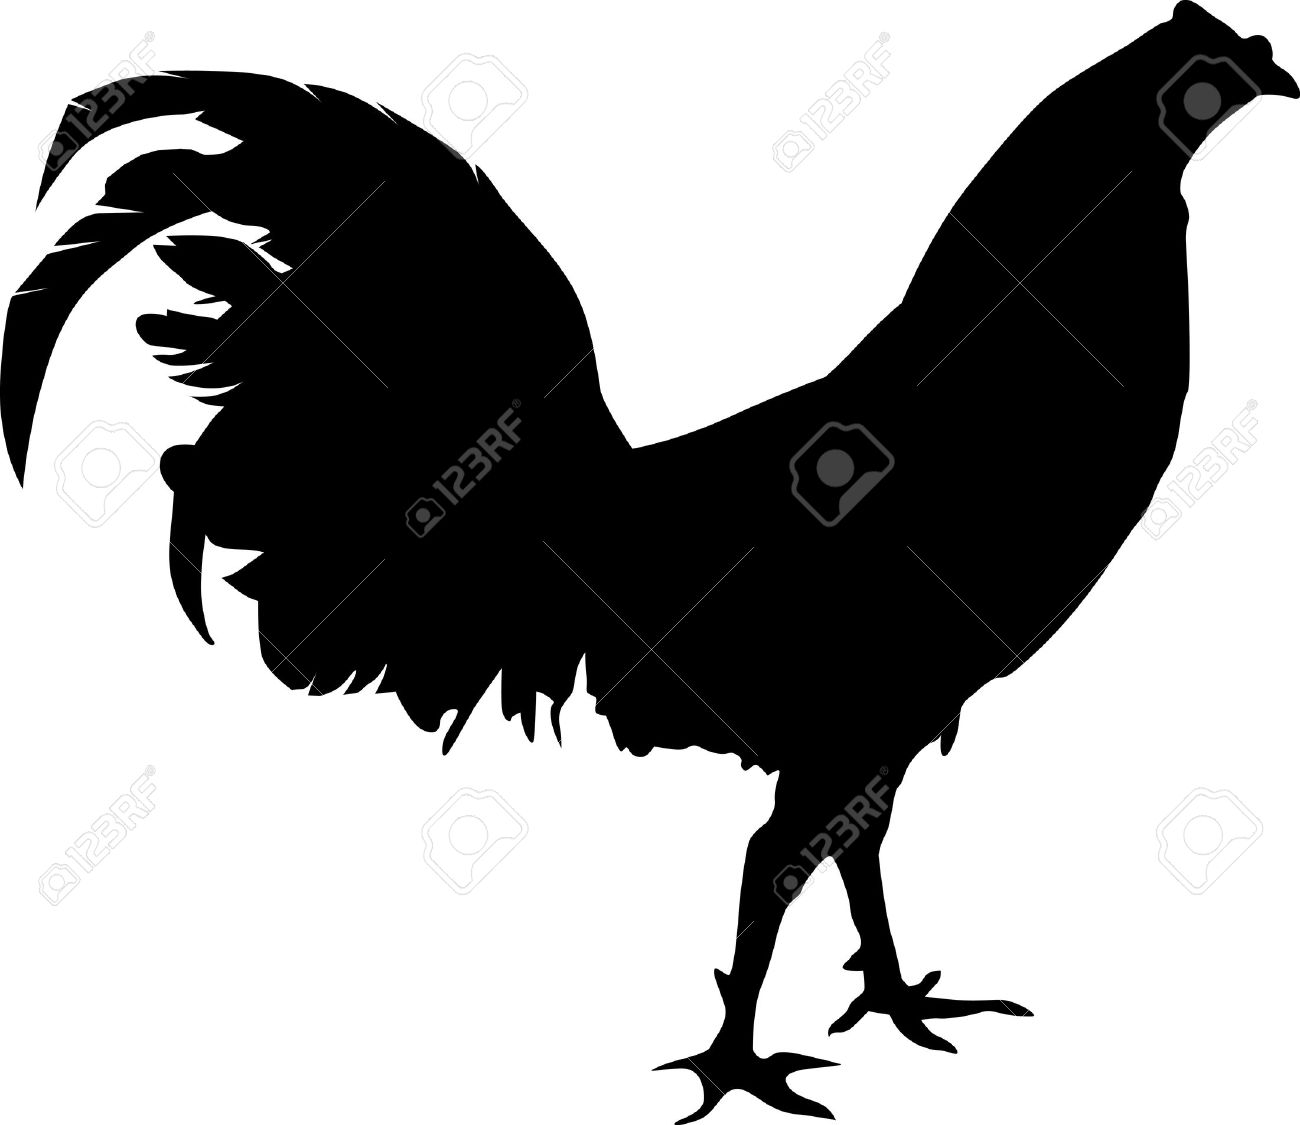 Fighting rooster silhouete walking around Stock Vector - 10002898